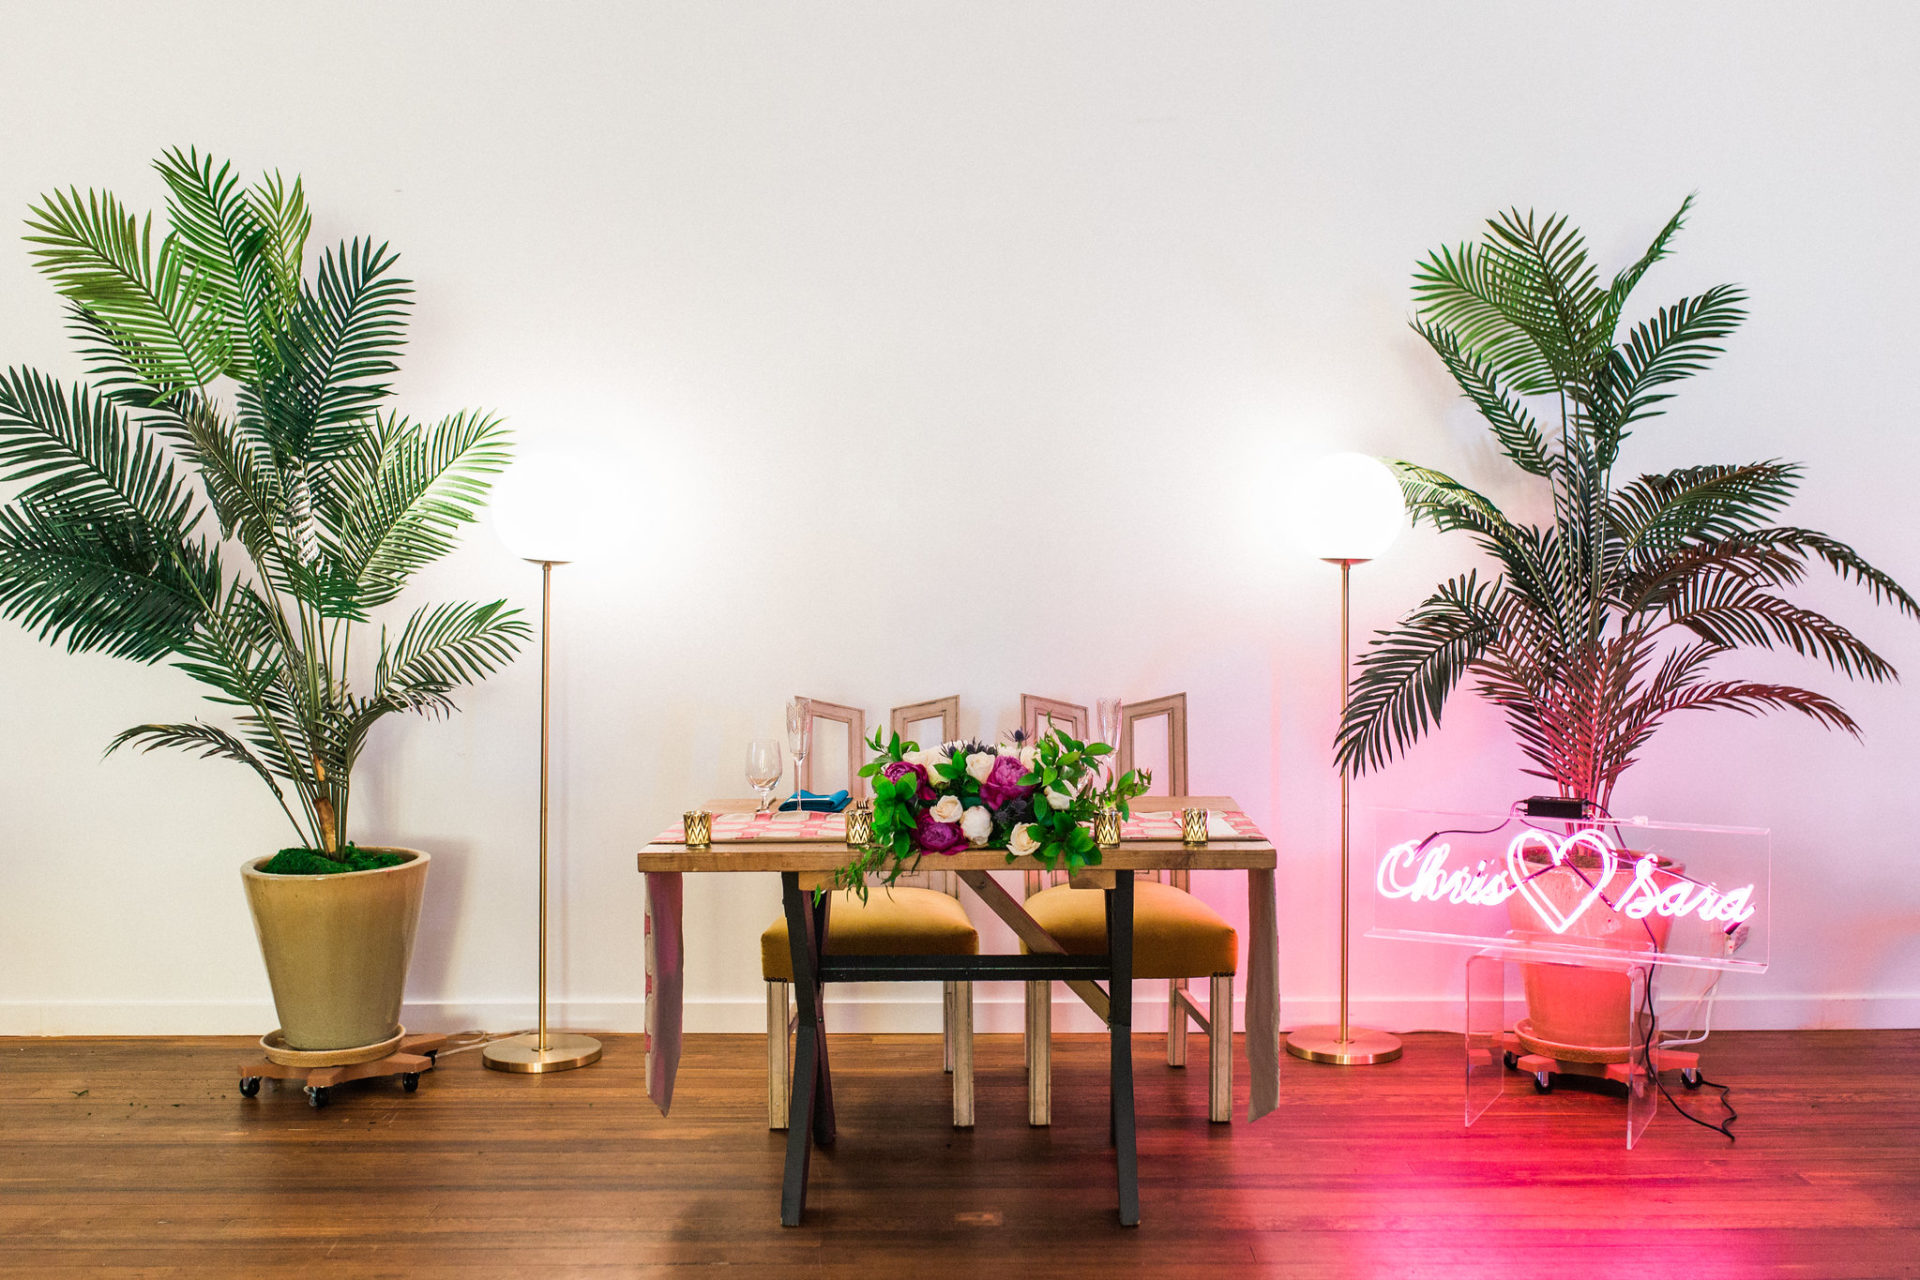 "a sweetheart table sits in a white room with wood floors. There are two potted tropical plants on either side of the table and a neon sign that says ""Chris <3 Sara"""